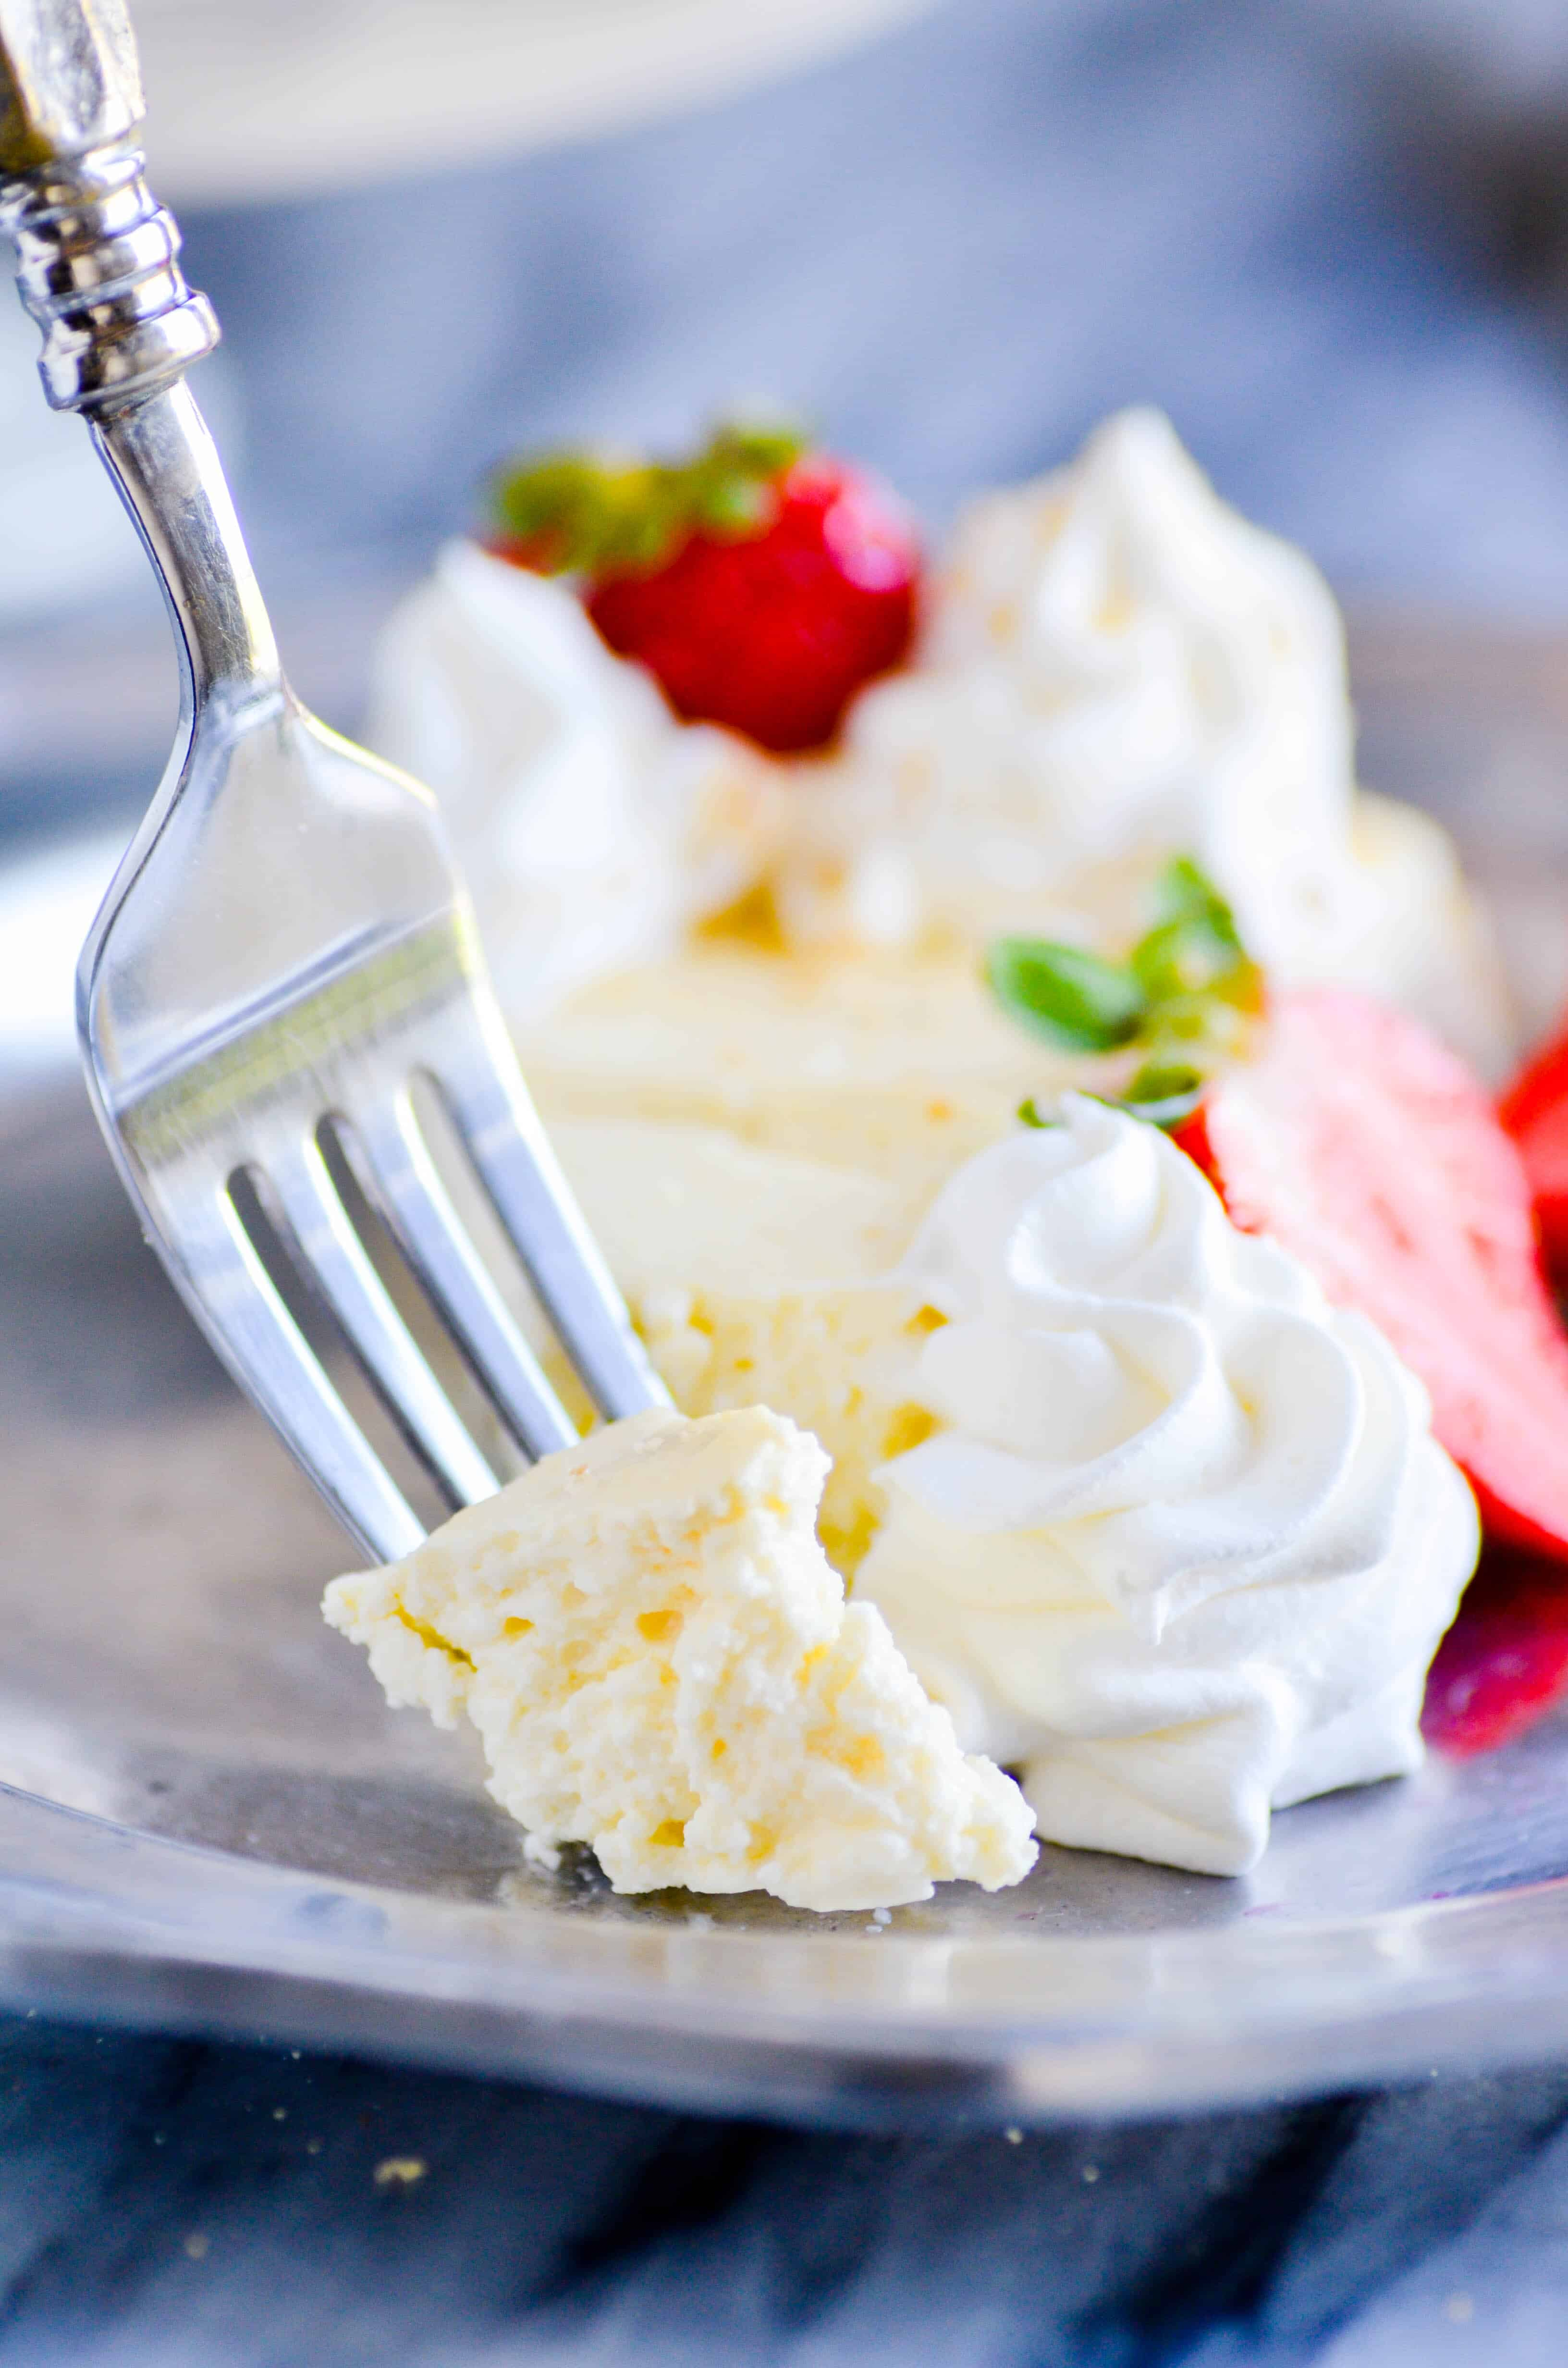 Whether you're watching your weight or simply trying to add a little more protein to your diet, this simple cheesecake recipe (only 1 Smart Point on Weight Watchers Freestyle!) is a must make.